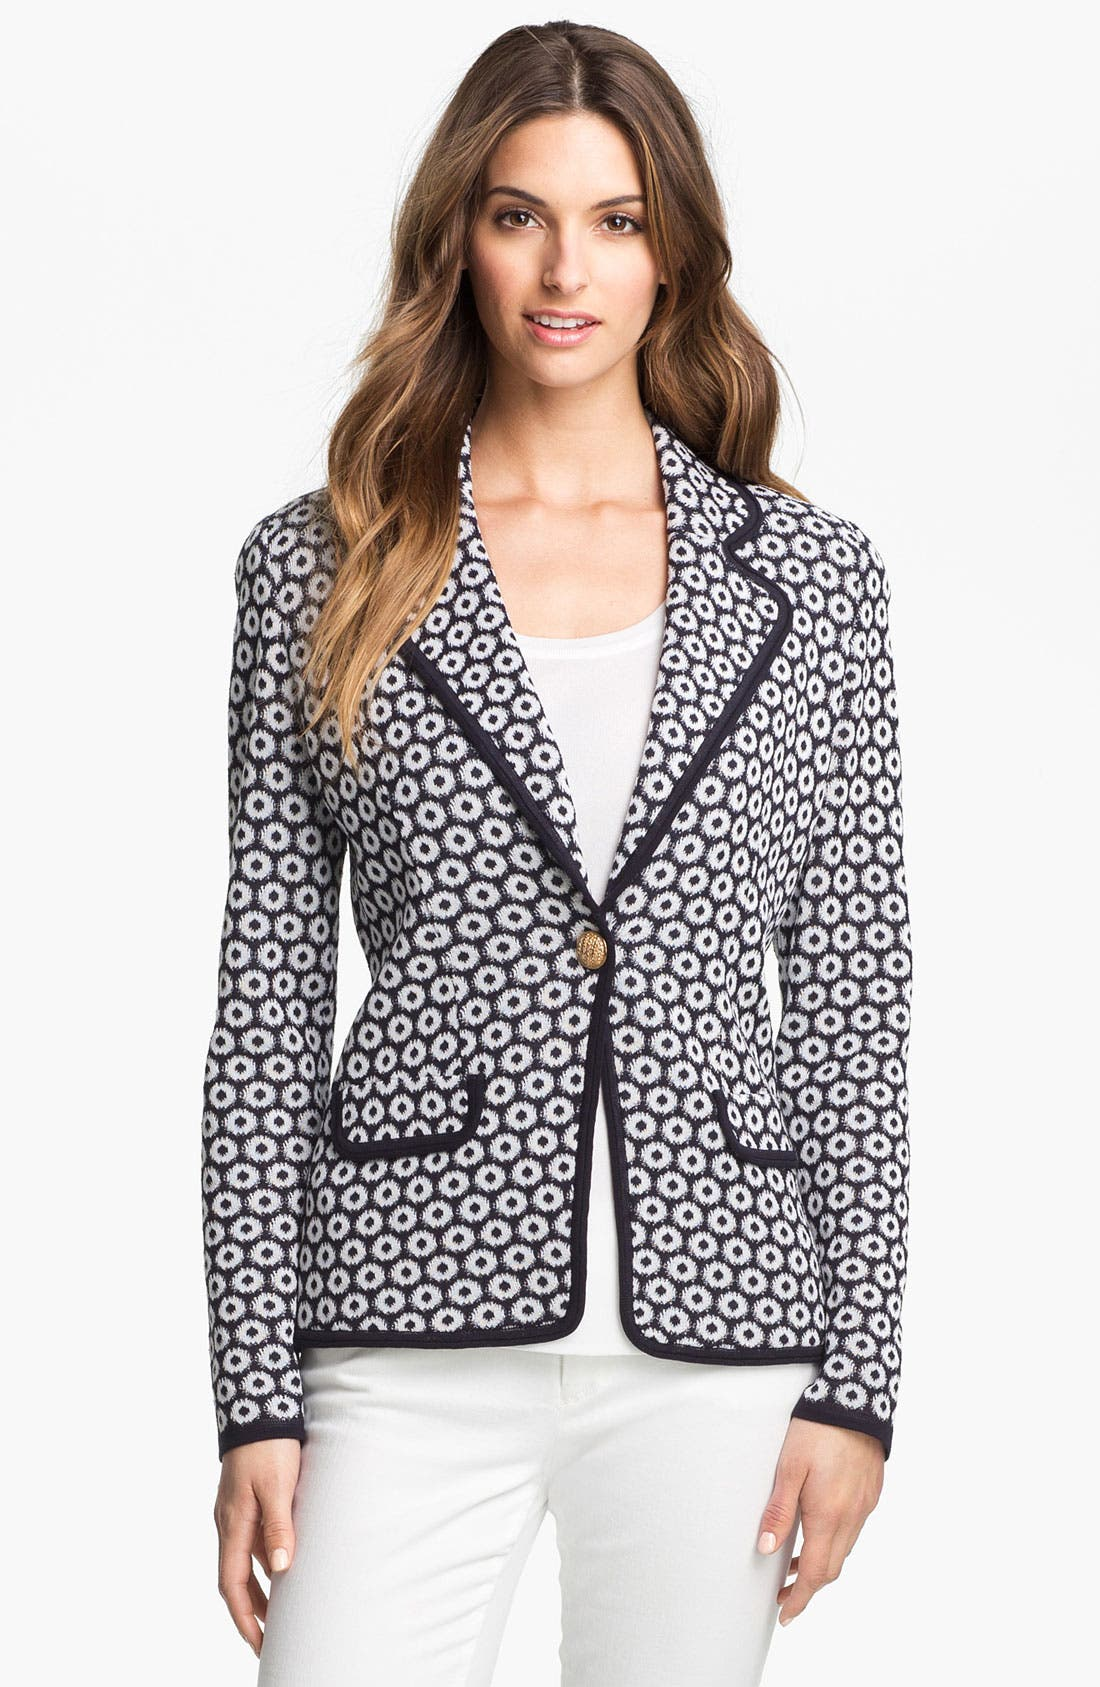 Alternate Image 1 Selected - Exclusively Misook 'Camille' Print Front Jacket (Petite) (Online Only)